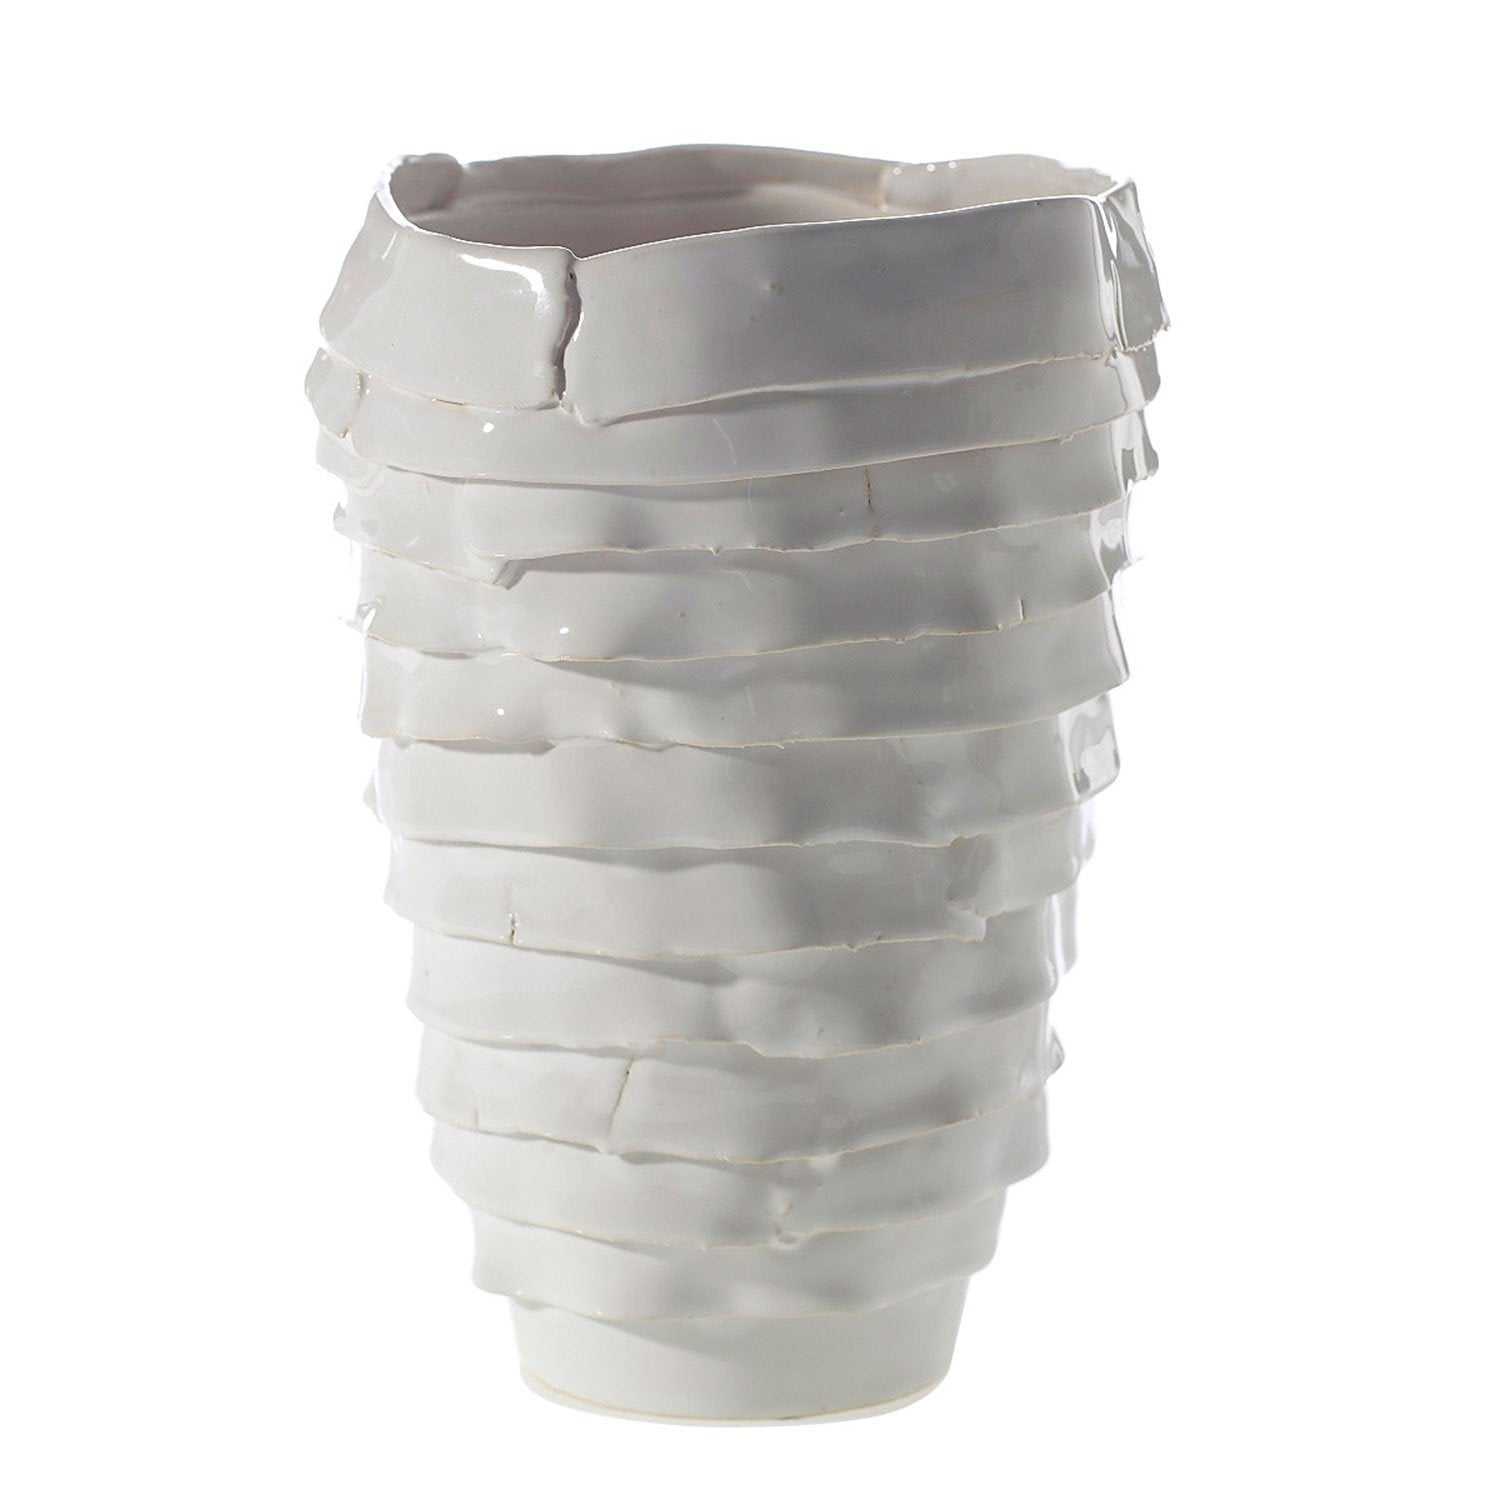 Ceramic White Vase with Waterfall Design